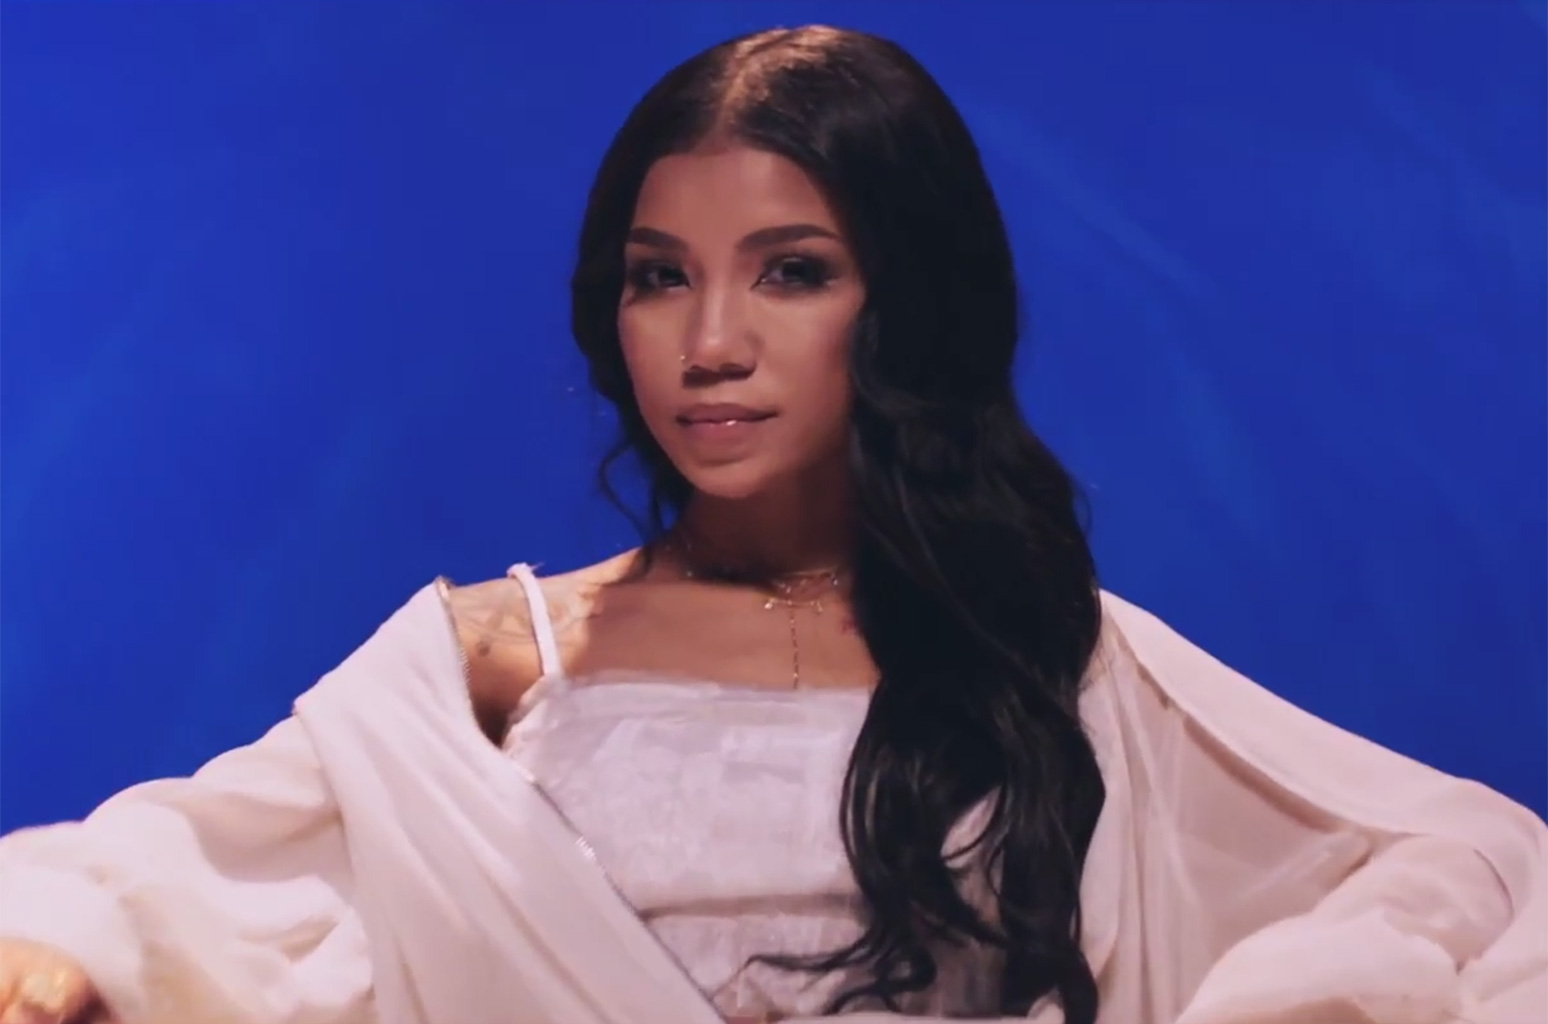 Future, Jhené Aiko and A-Trak Go 'Behind the Scene' with Belvedere Vodka and Noisey photo